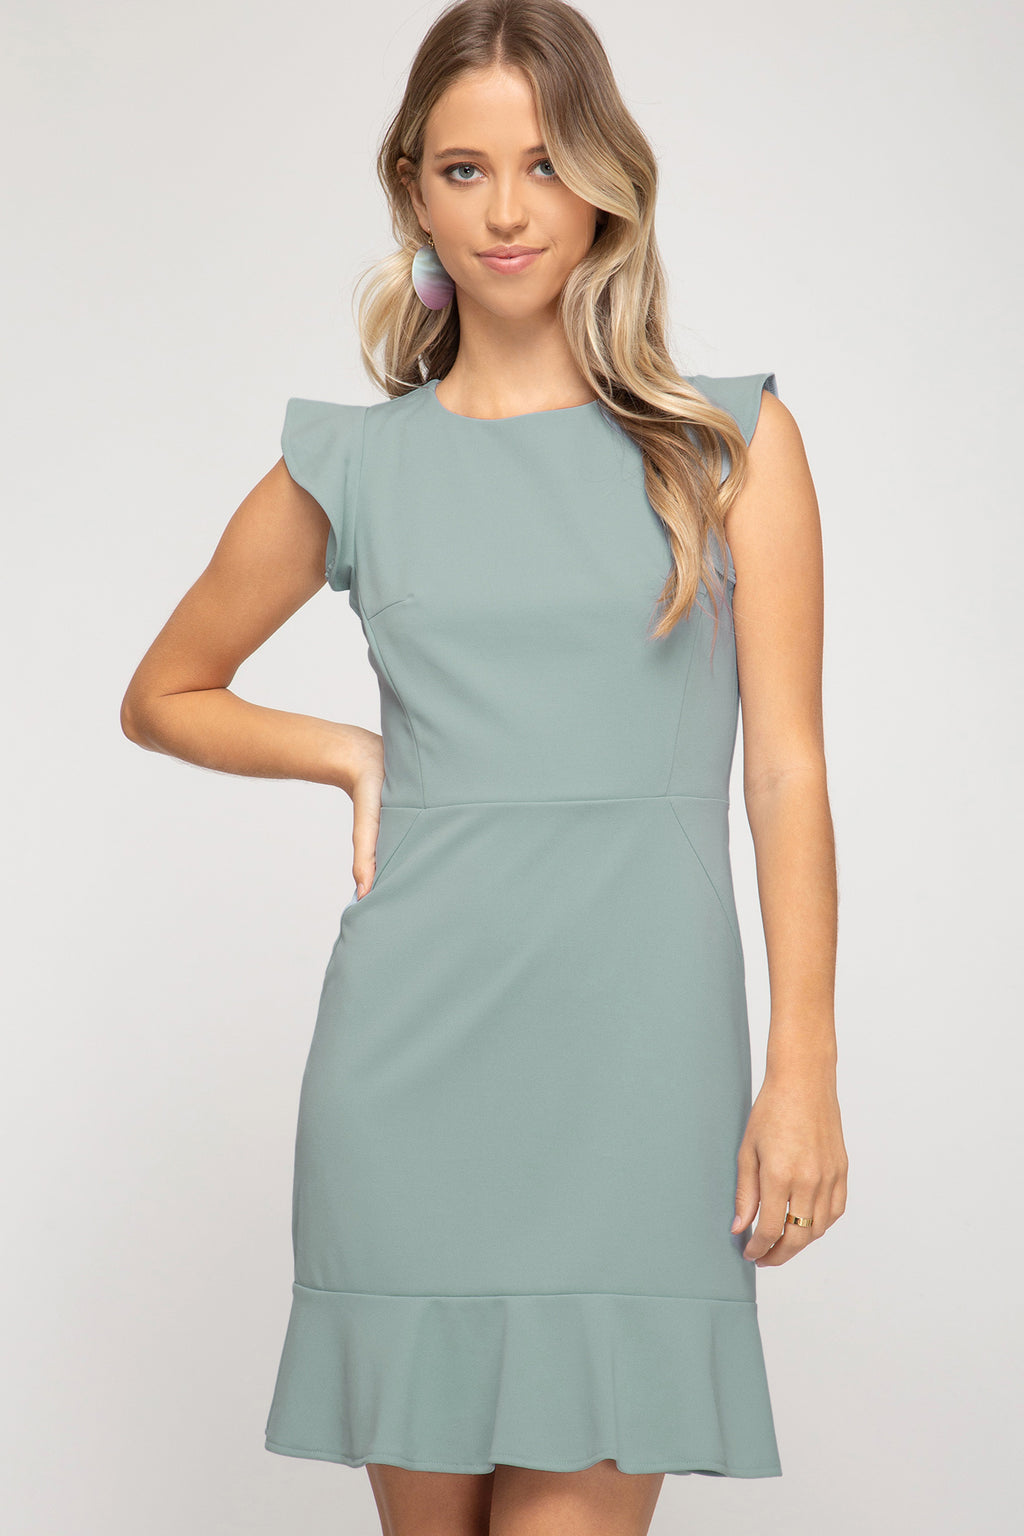 Marina Ruffled Cap Sleeve Dress